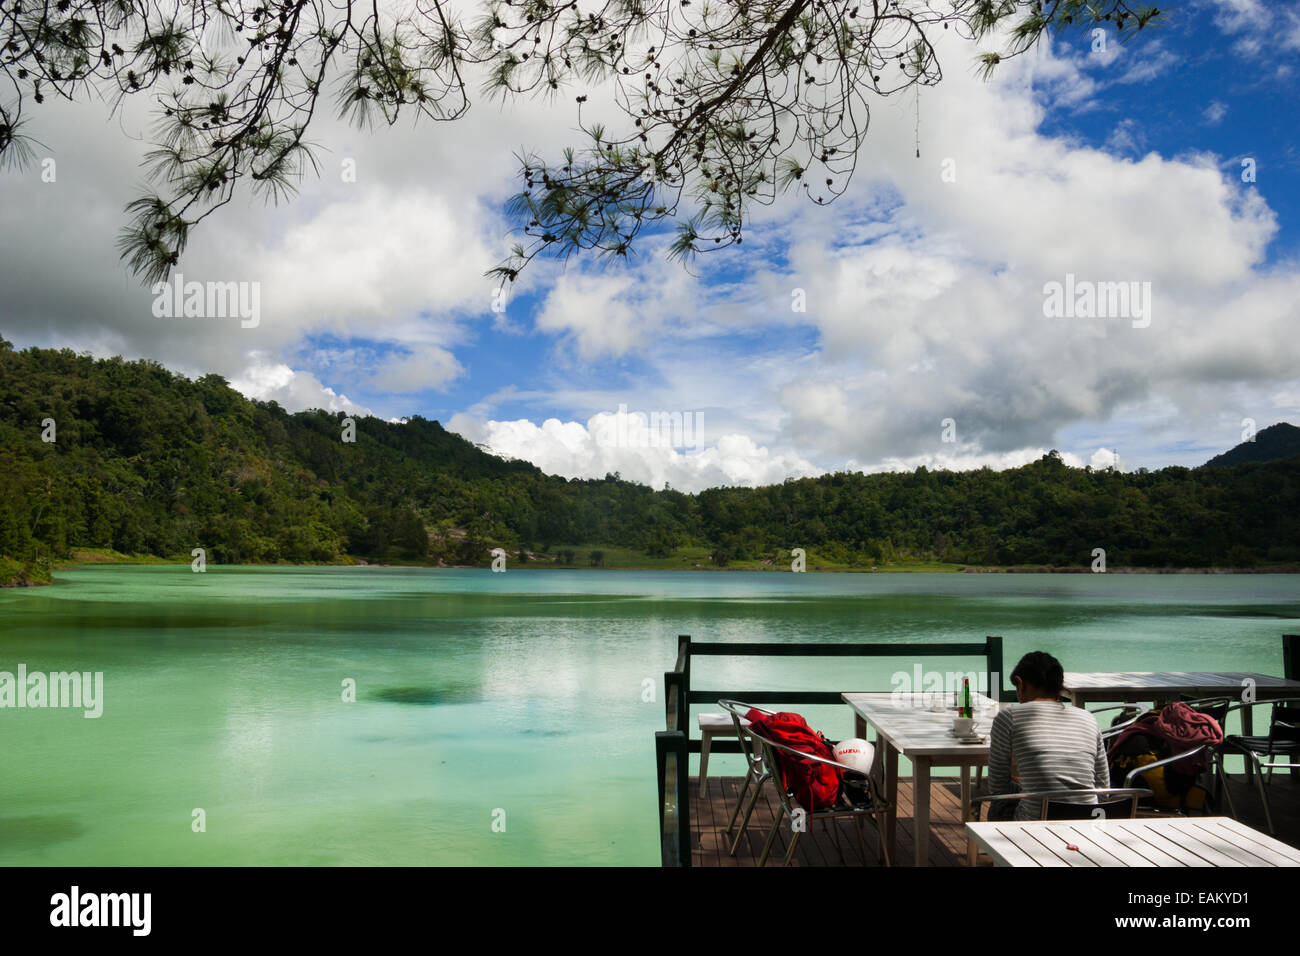 Linow Lake, a water-filled volcanic crater at North Sulawesi, Indonesia. - Stock Image